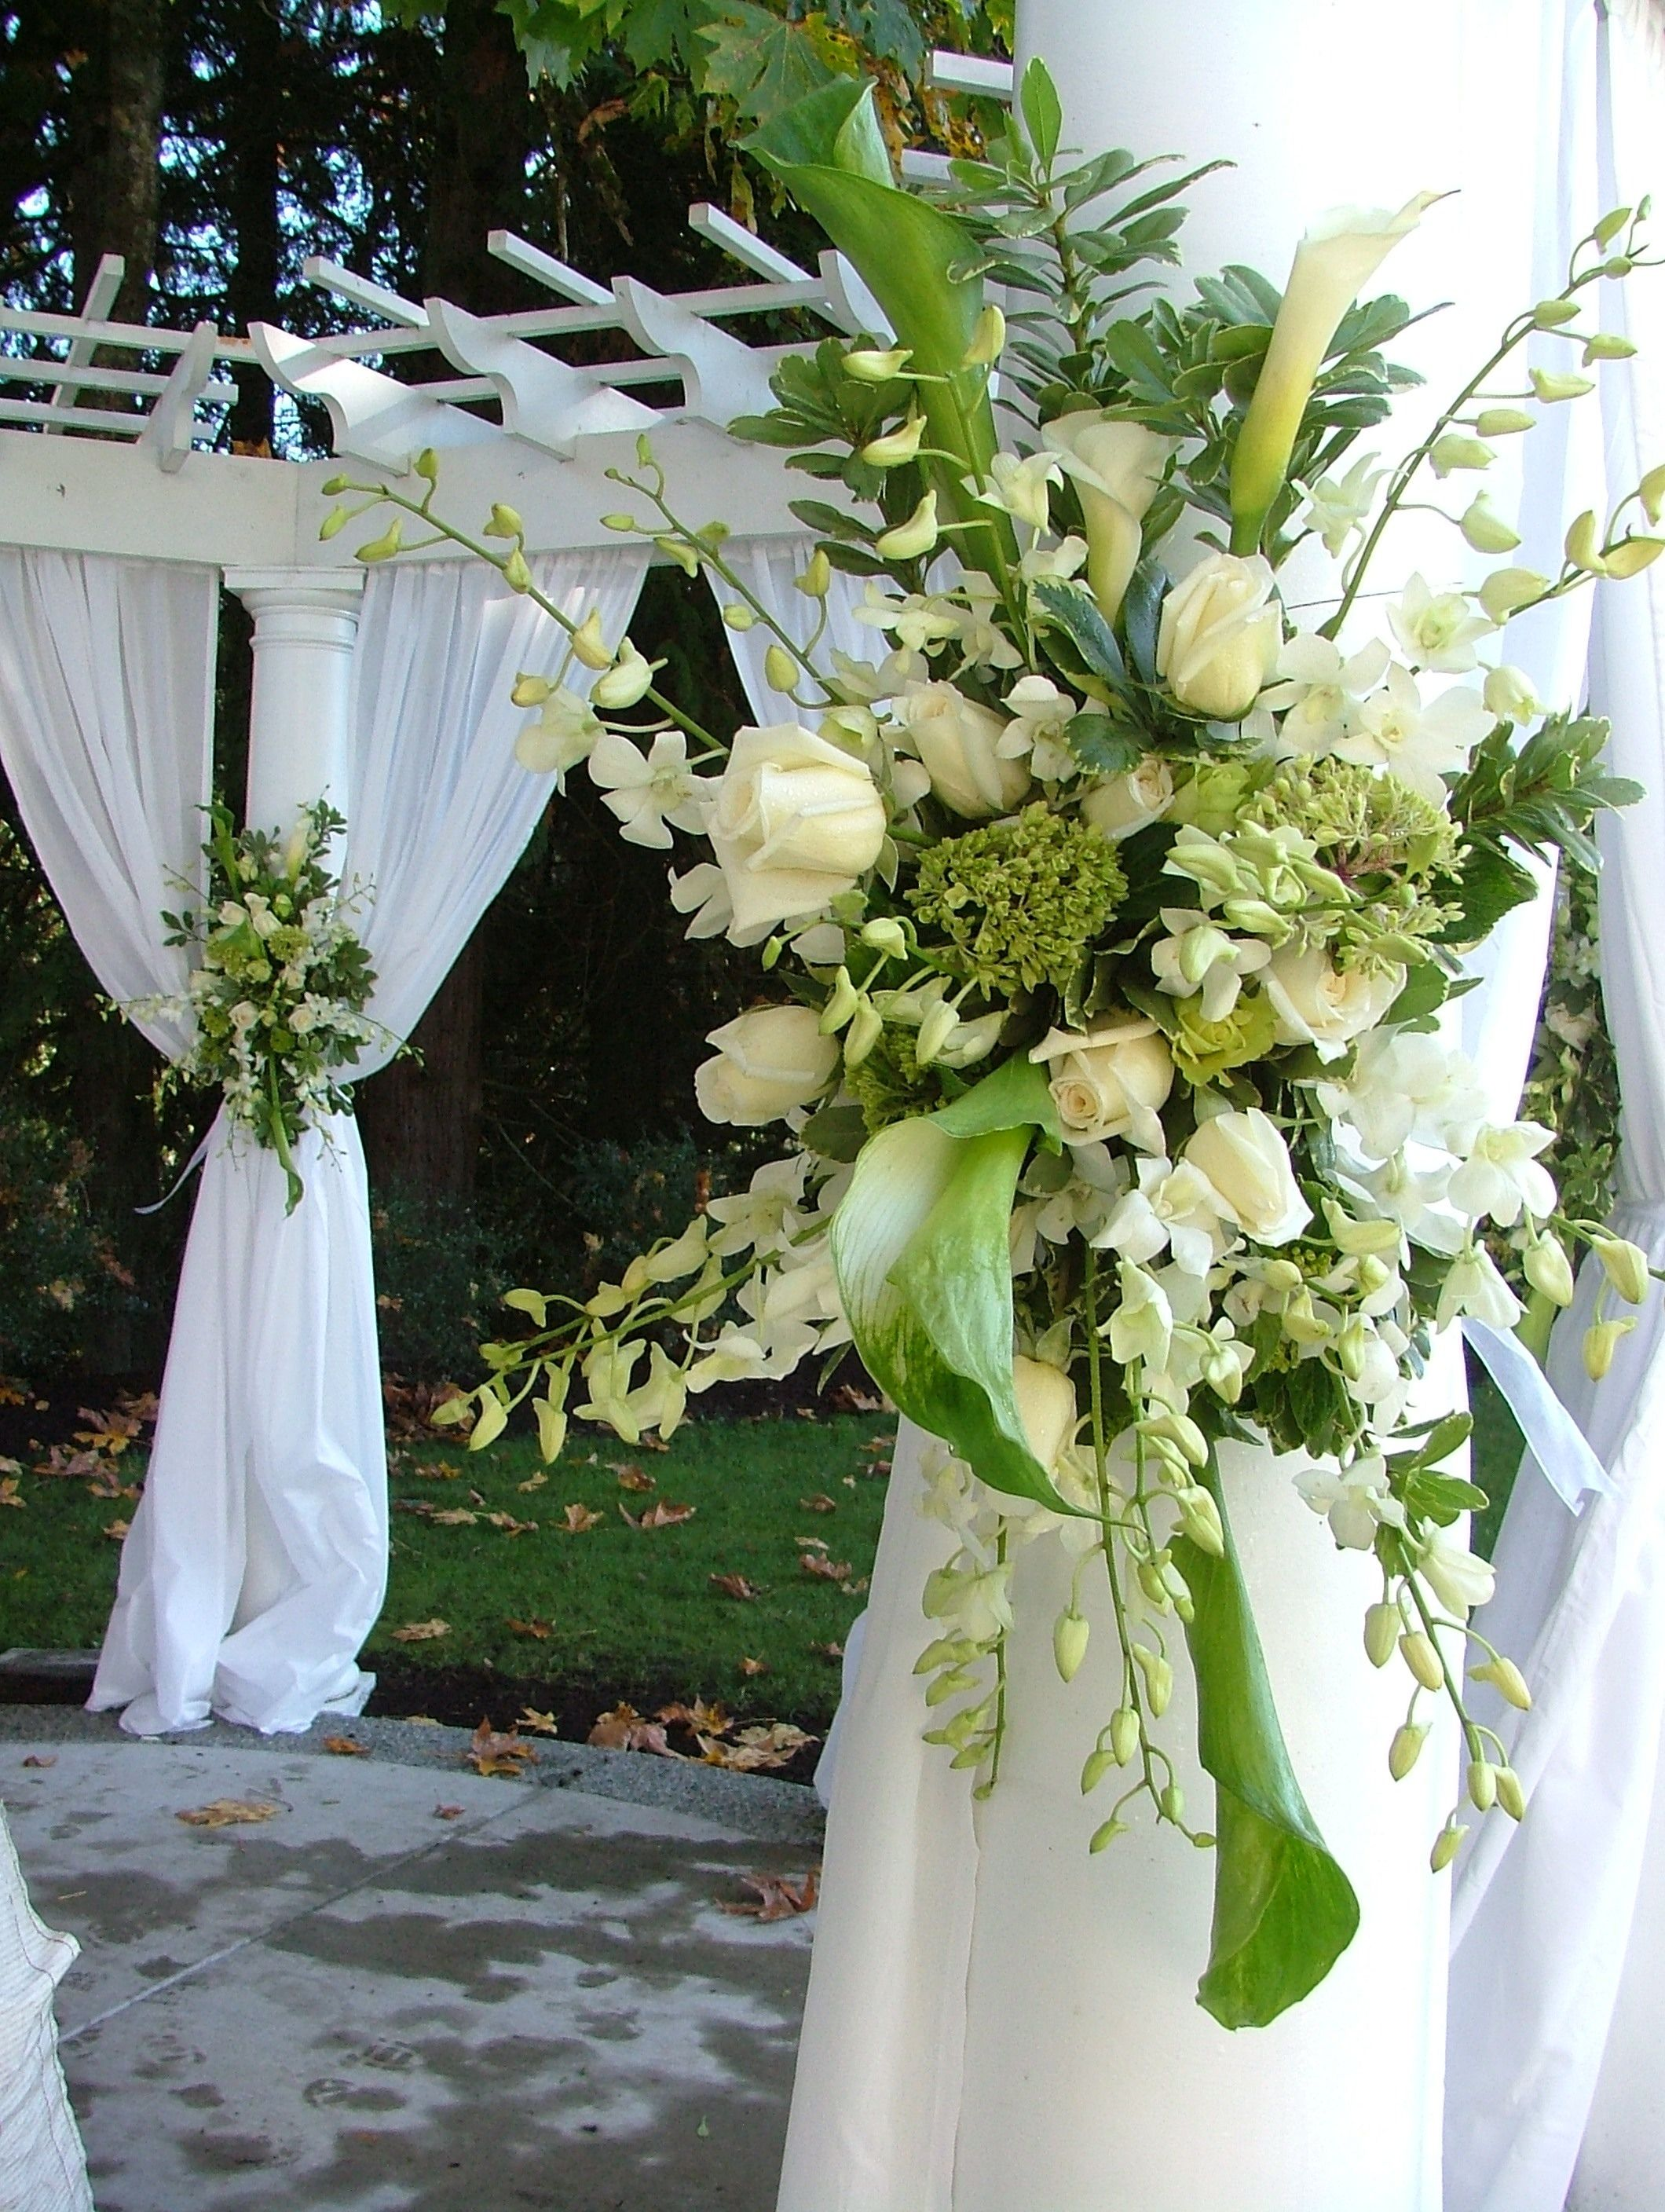 17 Best images about Weddings   Decorations   Ideas on Pinterest    Receptions  Wedding and Tree sale. 17 Best images about Weddings   Decorations   Ideas on Pinterest